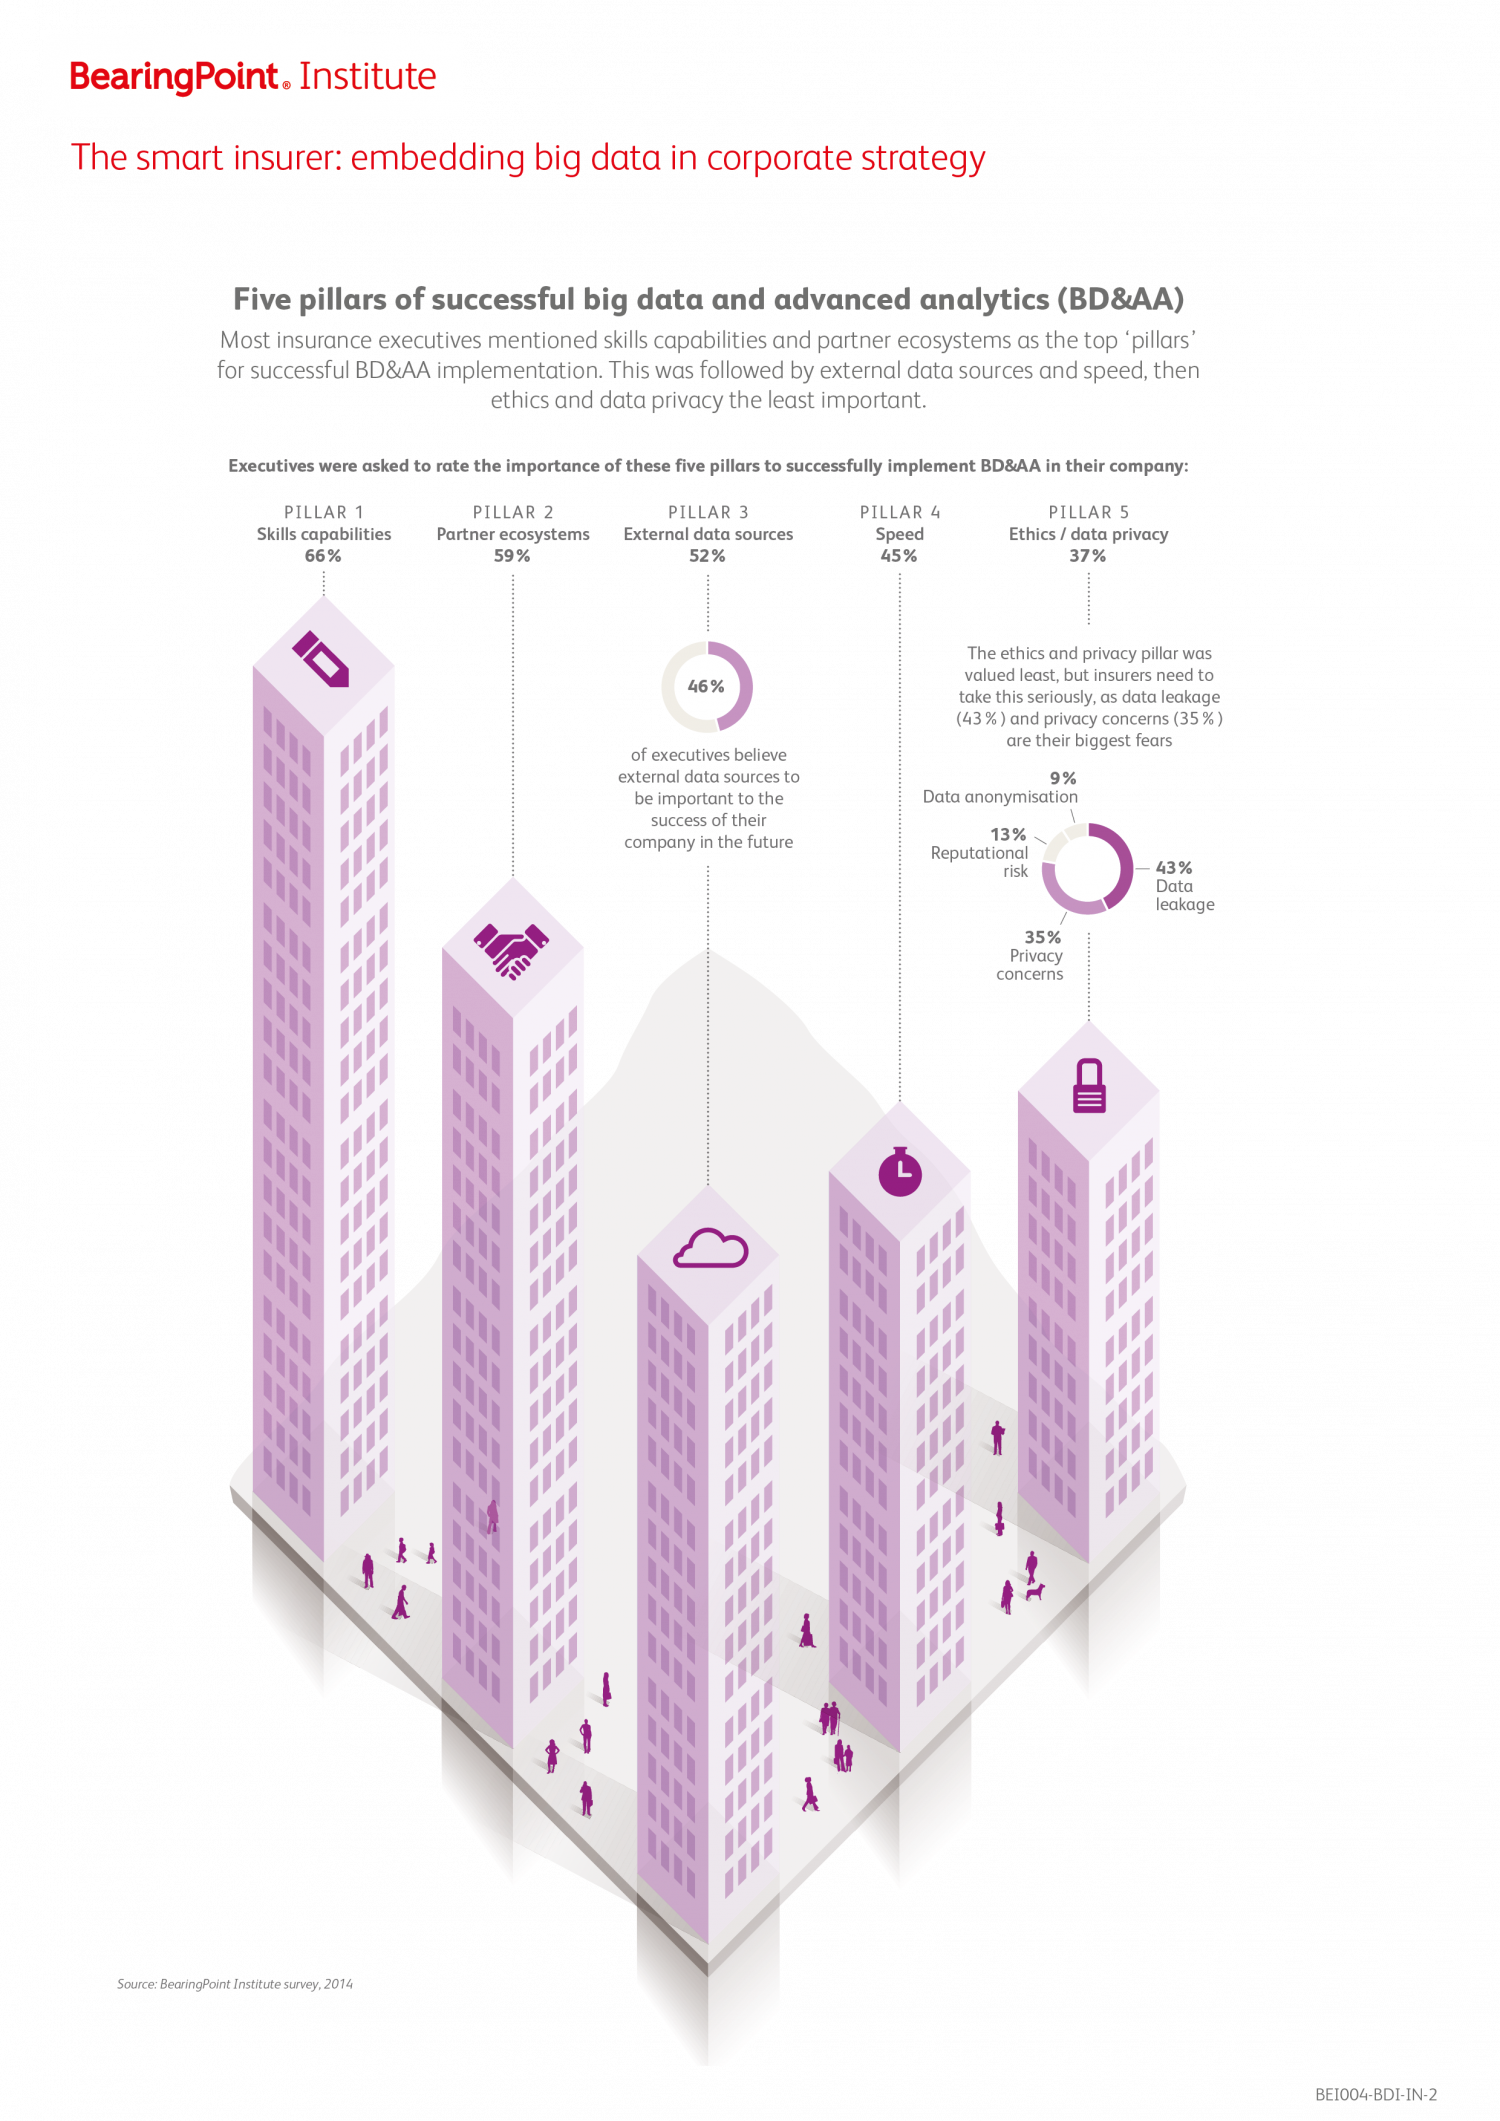 Five Pillars of Successful Big Data and Advanced Analytics Infographic